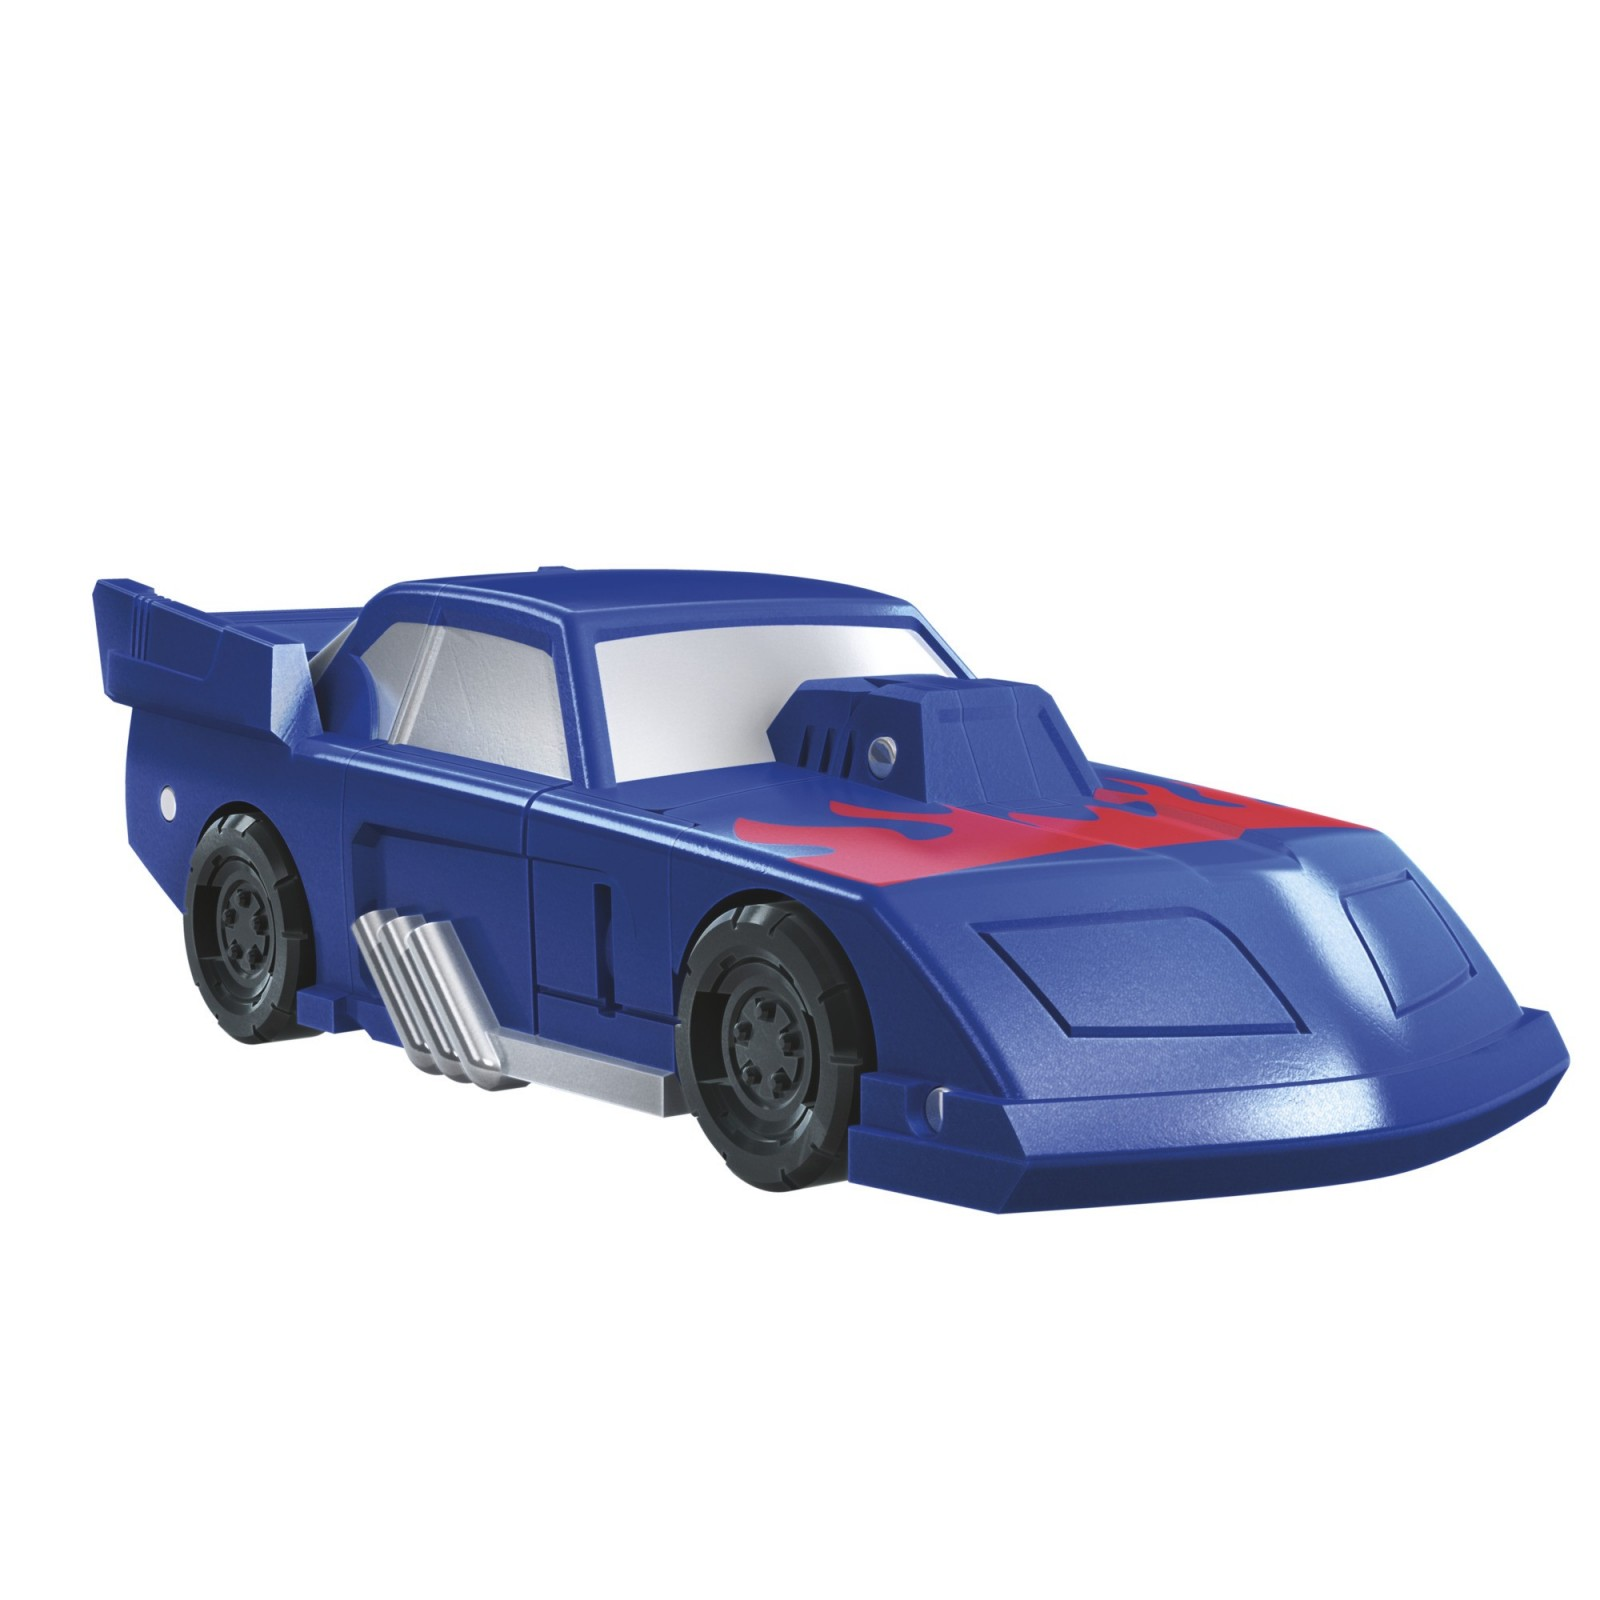 Transformers News: Generations Earthrise Airwave, Megatron, Smokescreen and More Revealed Ahead of Toy Fair 2020